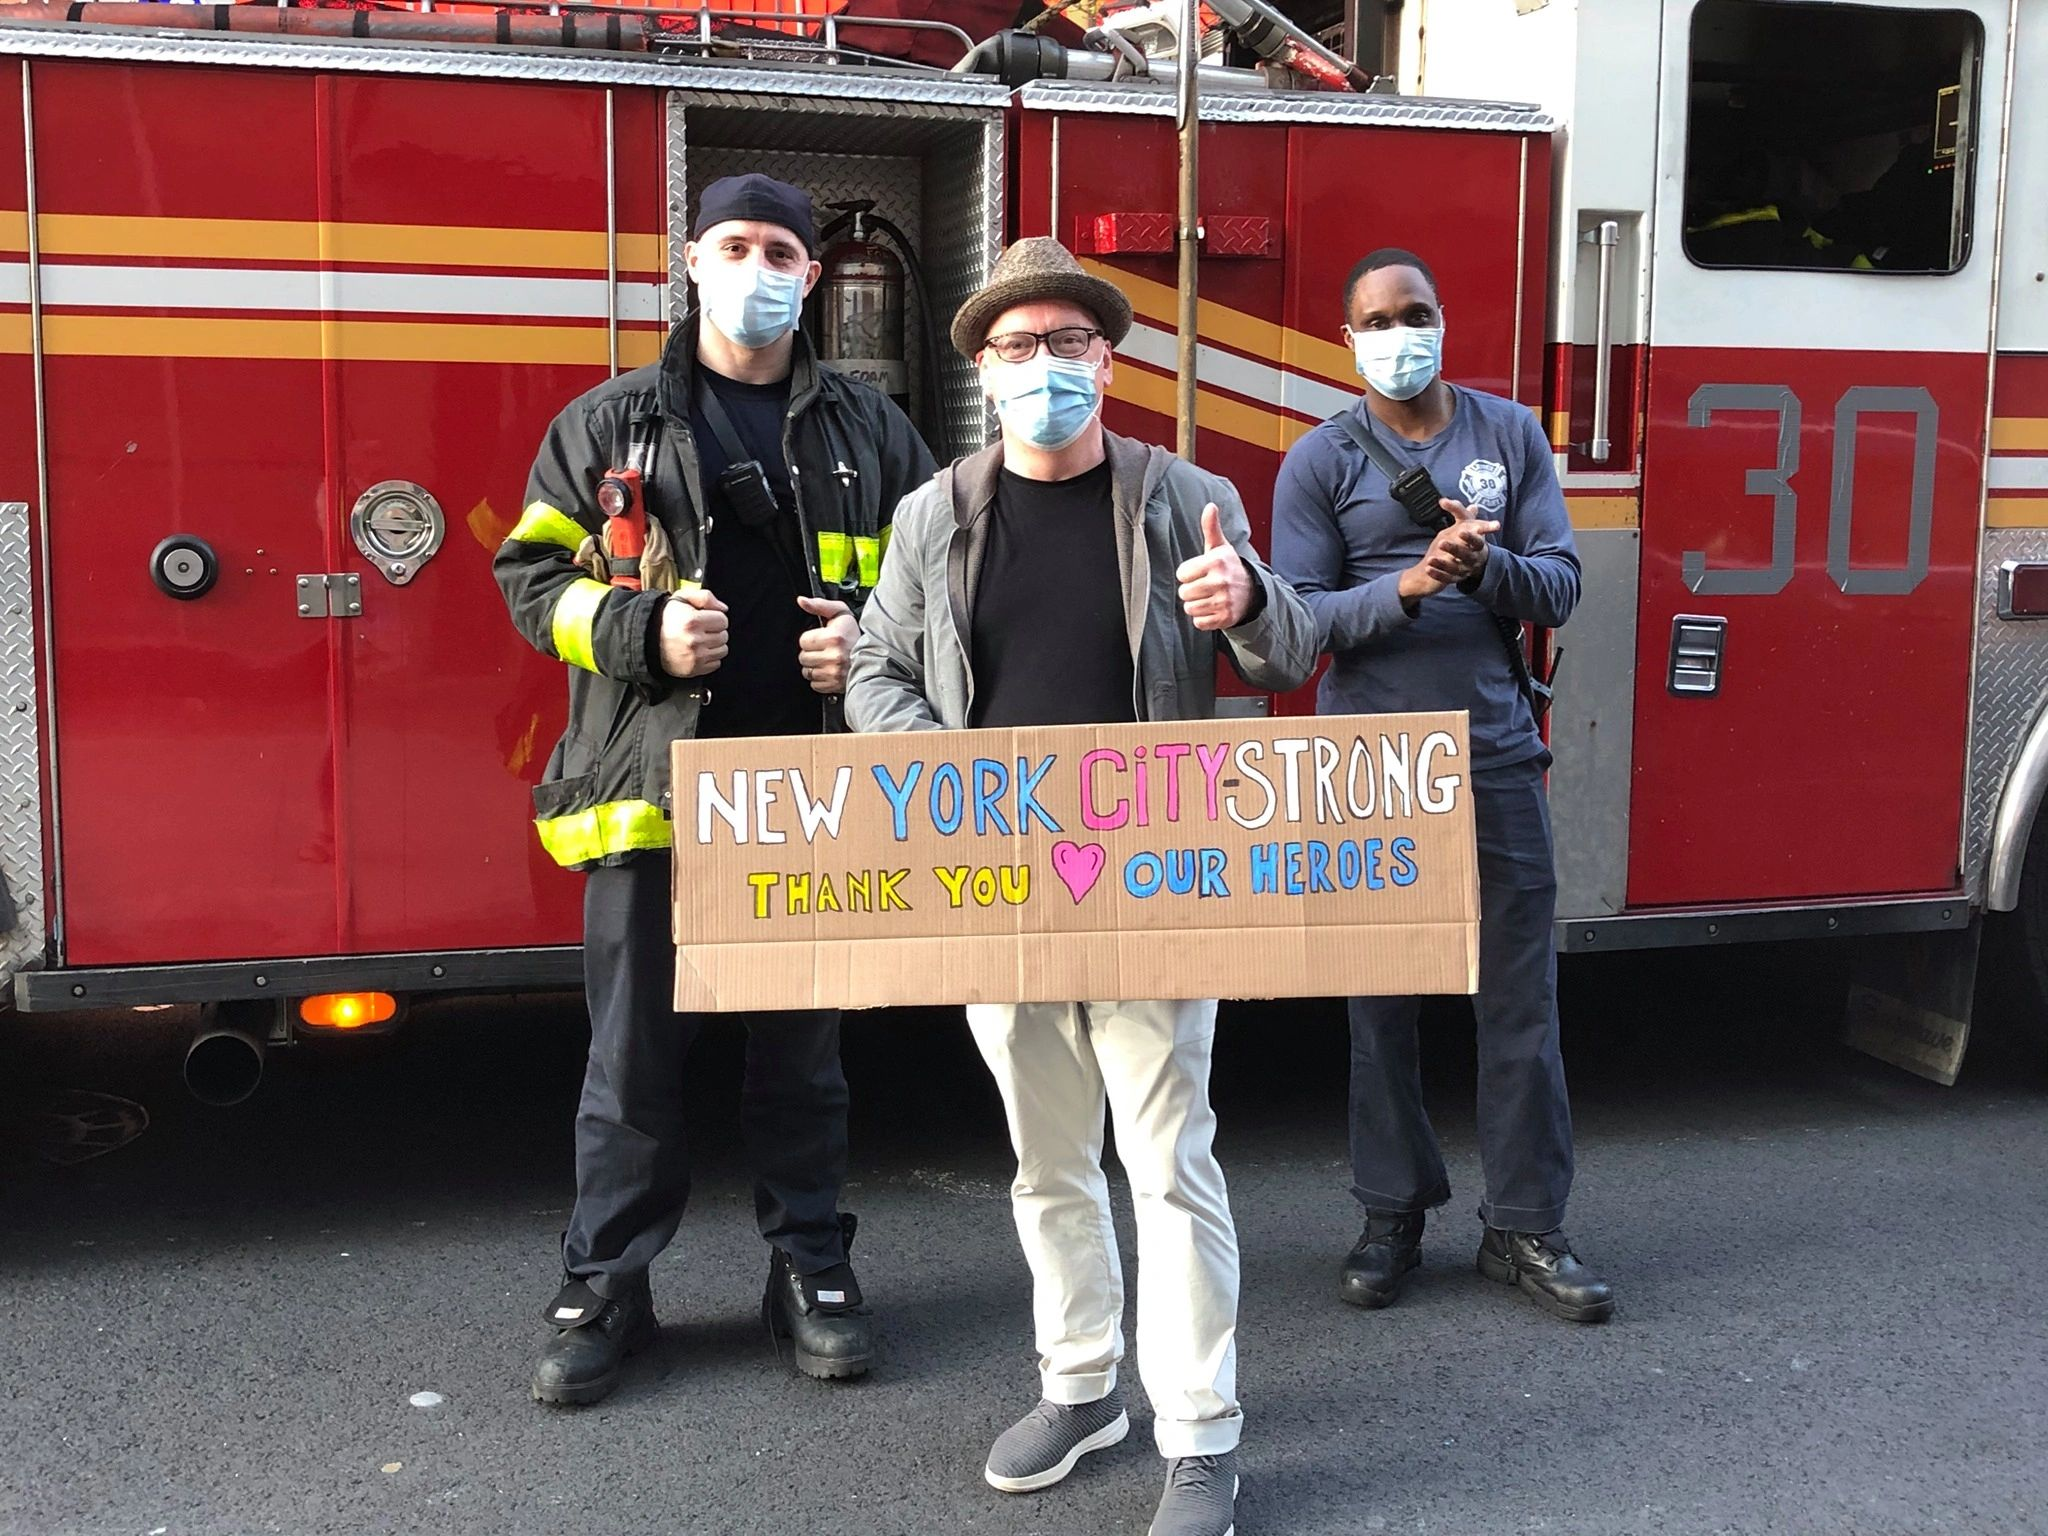 NYC Strong with NYFD